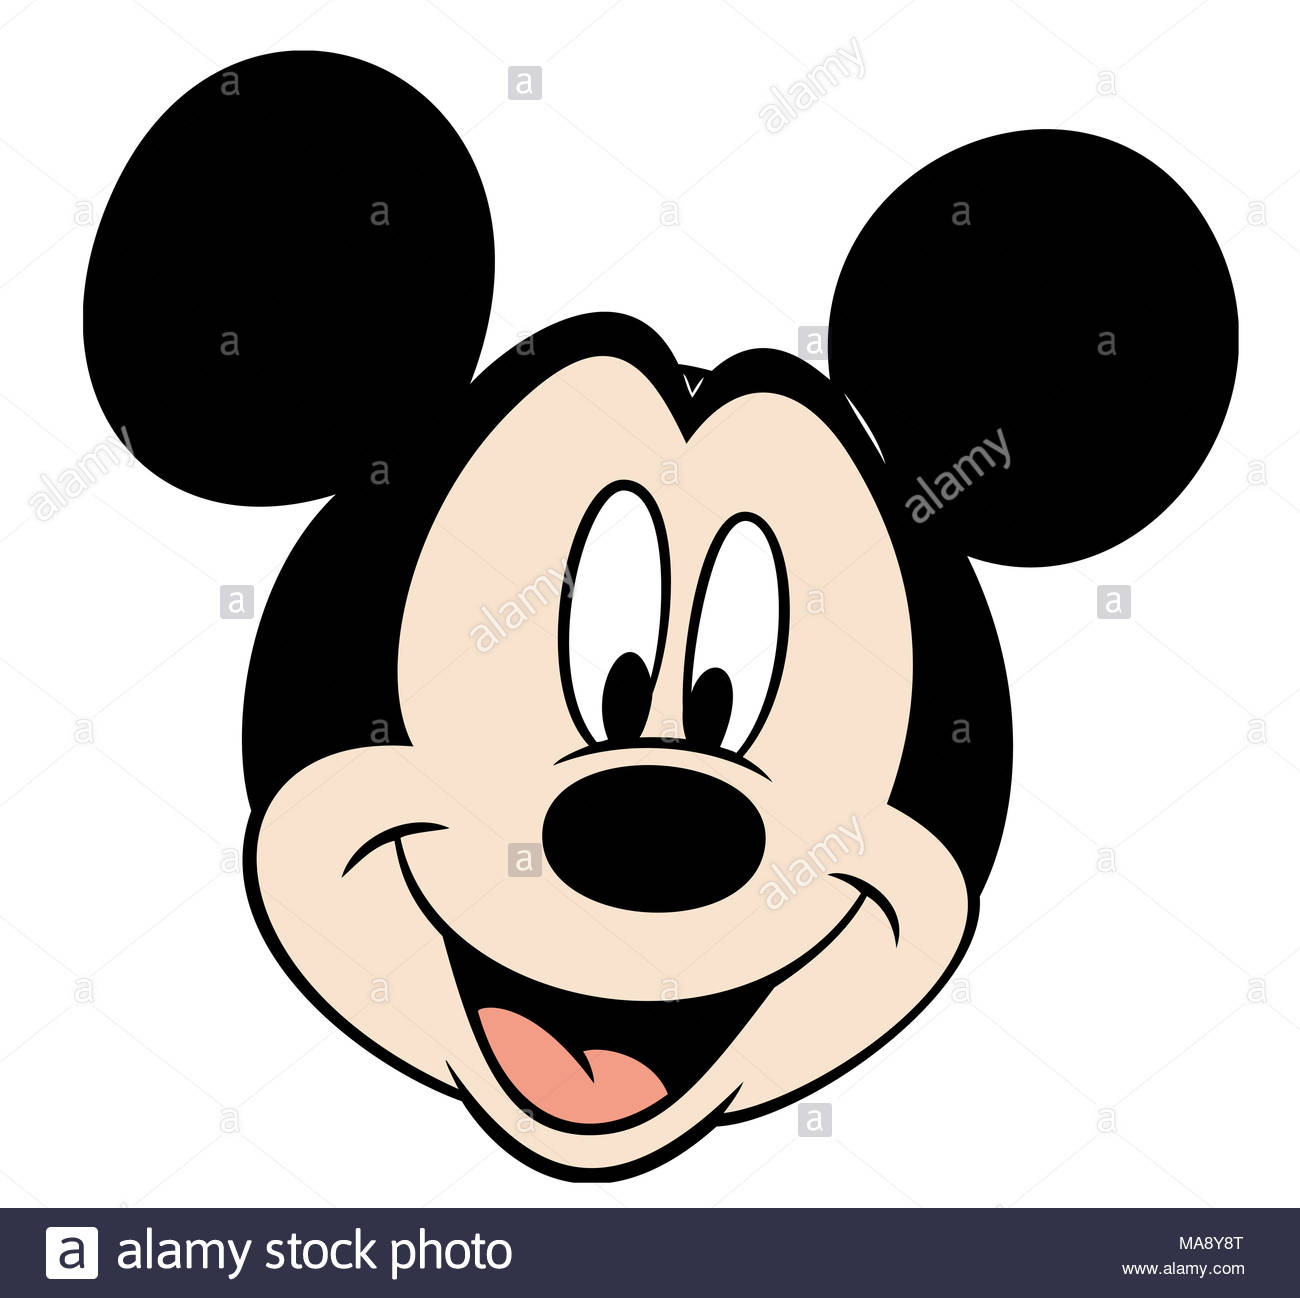 Happy Mouse Cartoon Imágenes De Stock & Happy Mouse Cartoon Fotos De ...